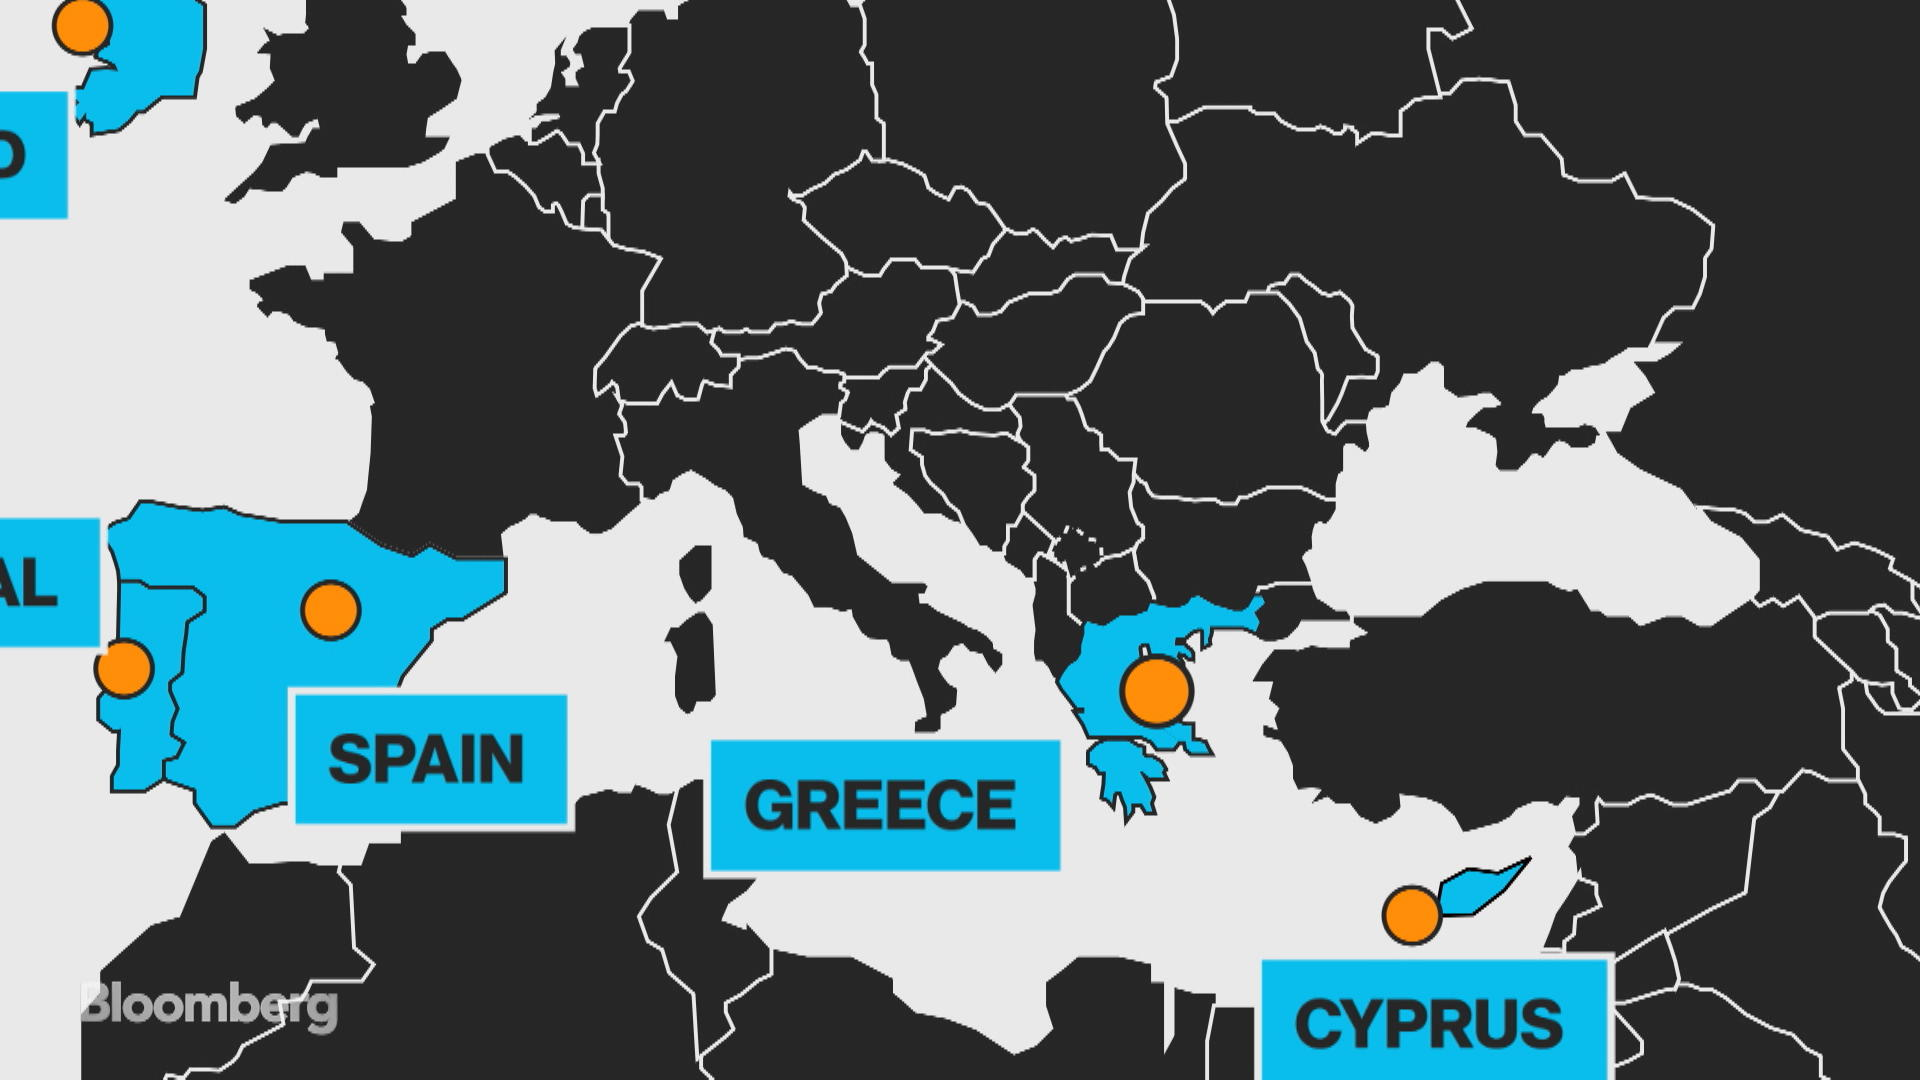 The Euro-Zone Crisis: What Has Changed Since Greece and Other Nations in the Region Were Bailed Out?